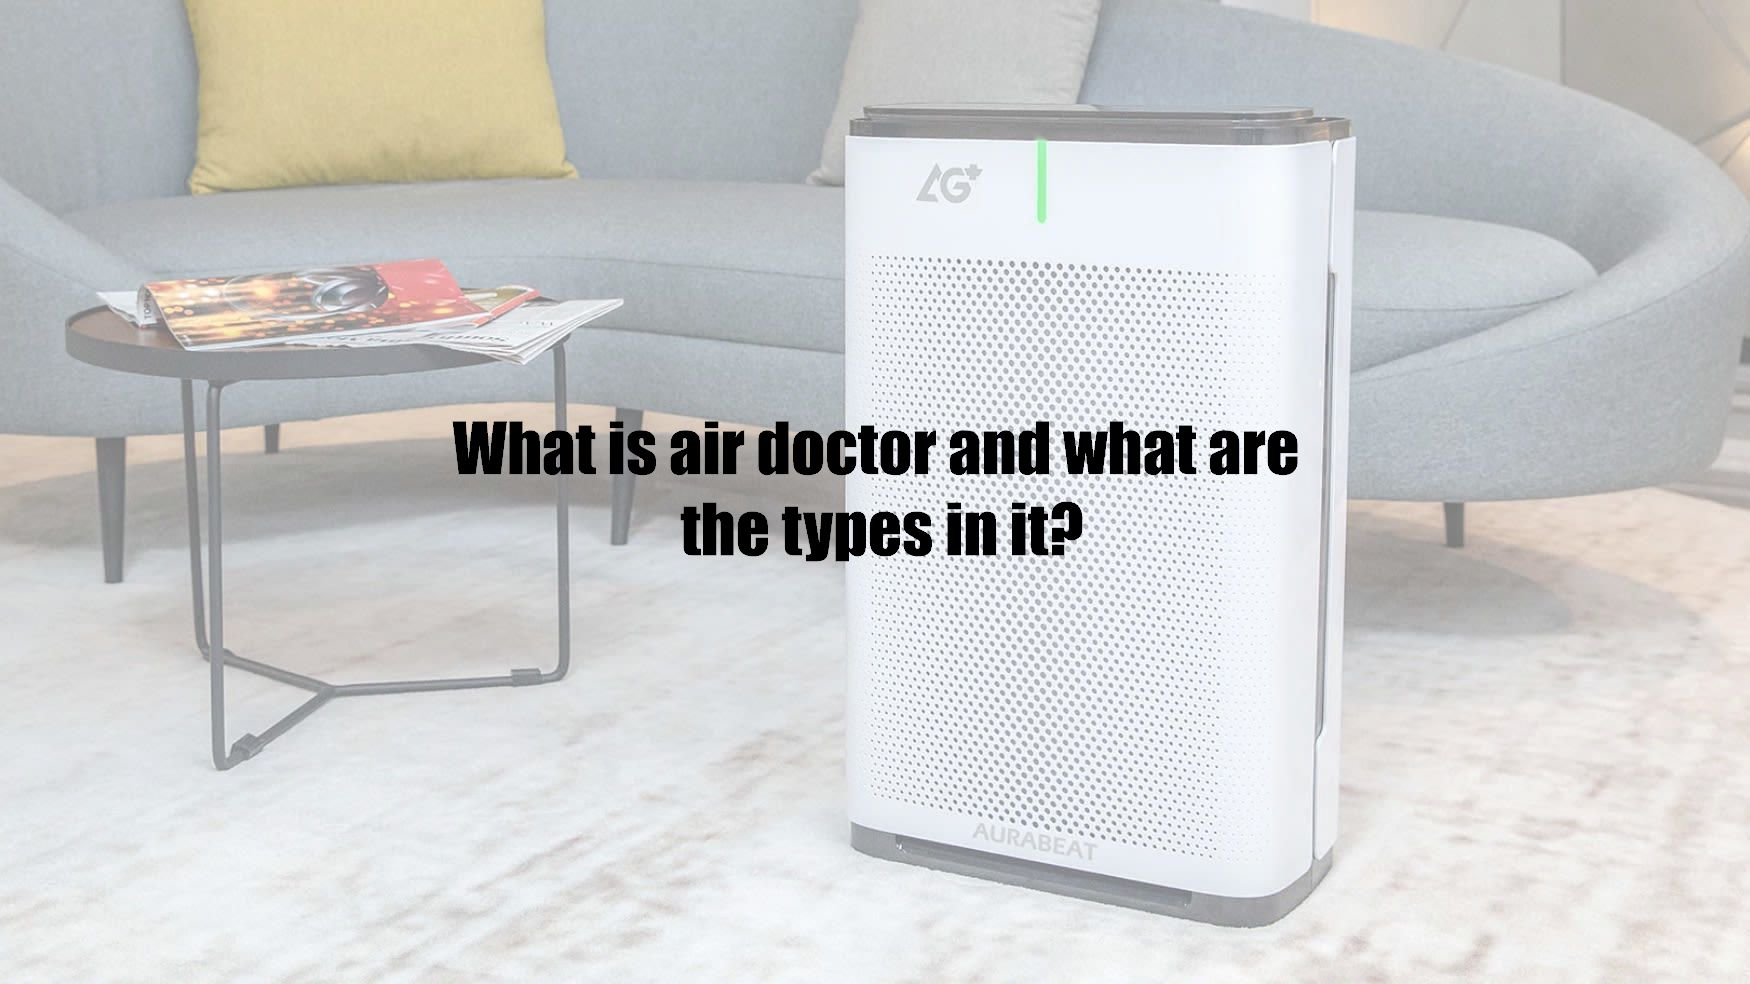 What is air doctor and what are the types in it?